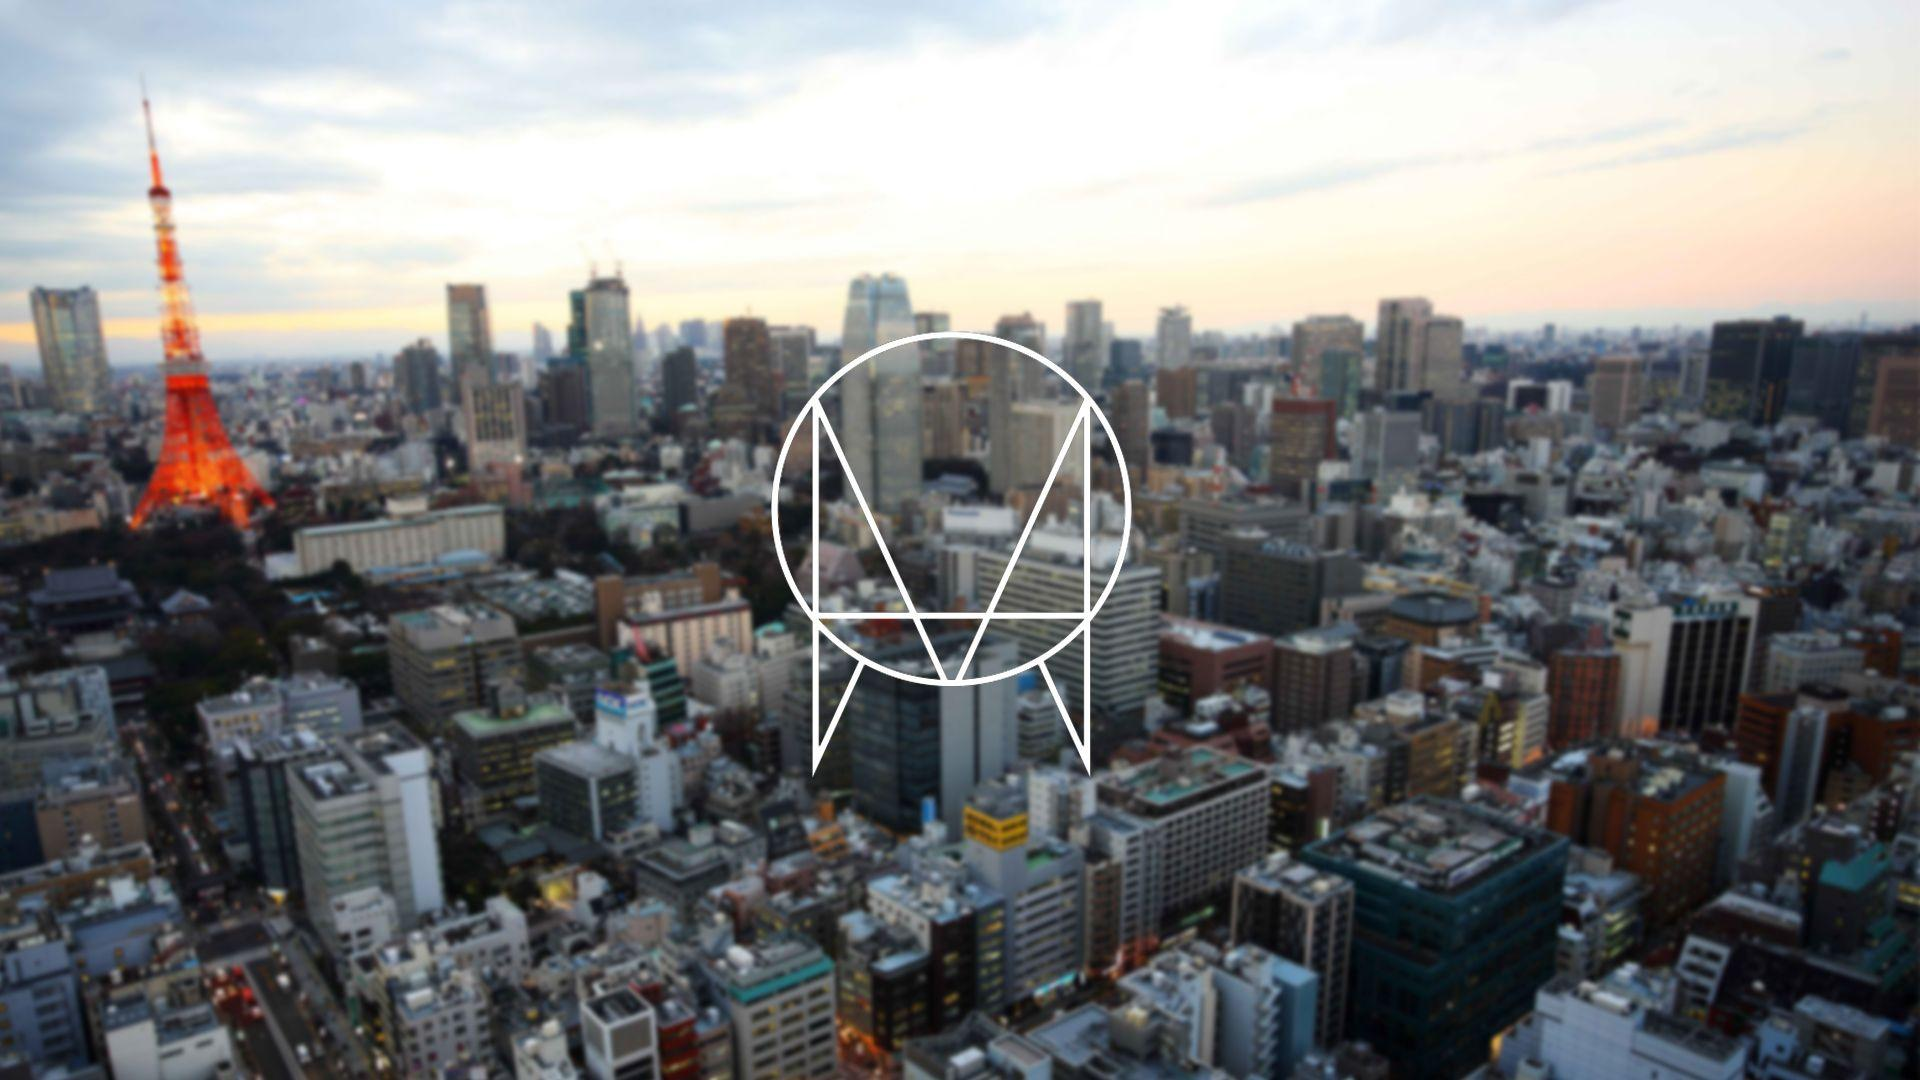 OWSLA Wallpapers on Behance